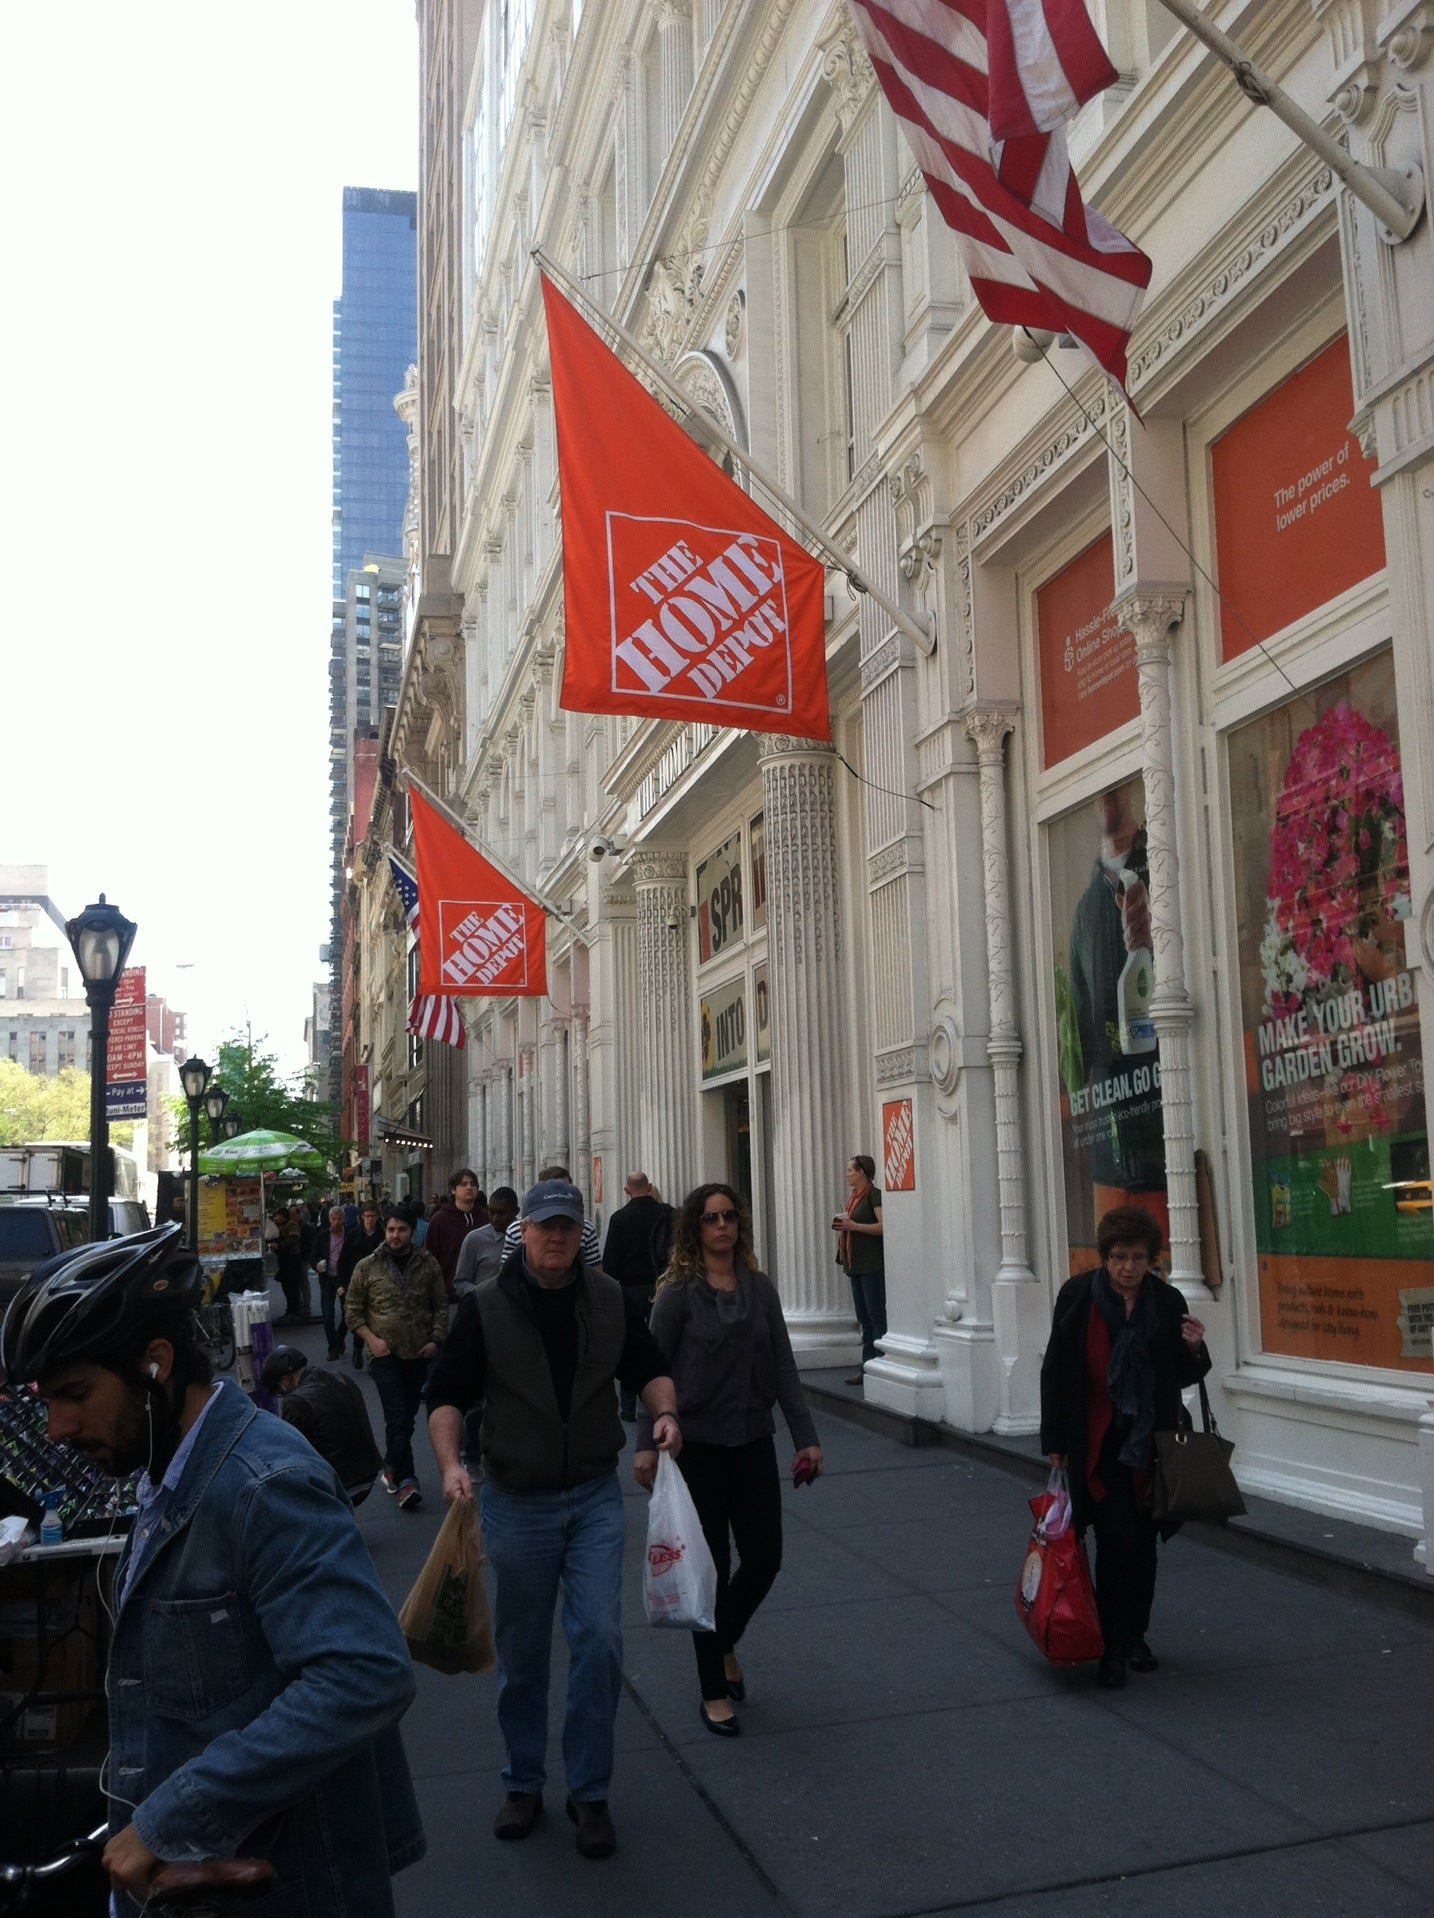 The Home Depot at 40 W 23rd St New York NY